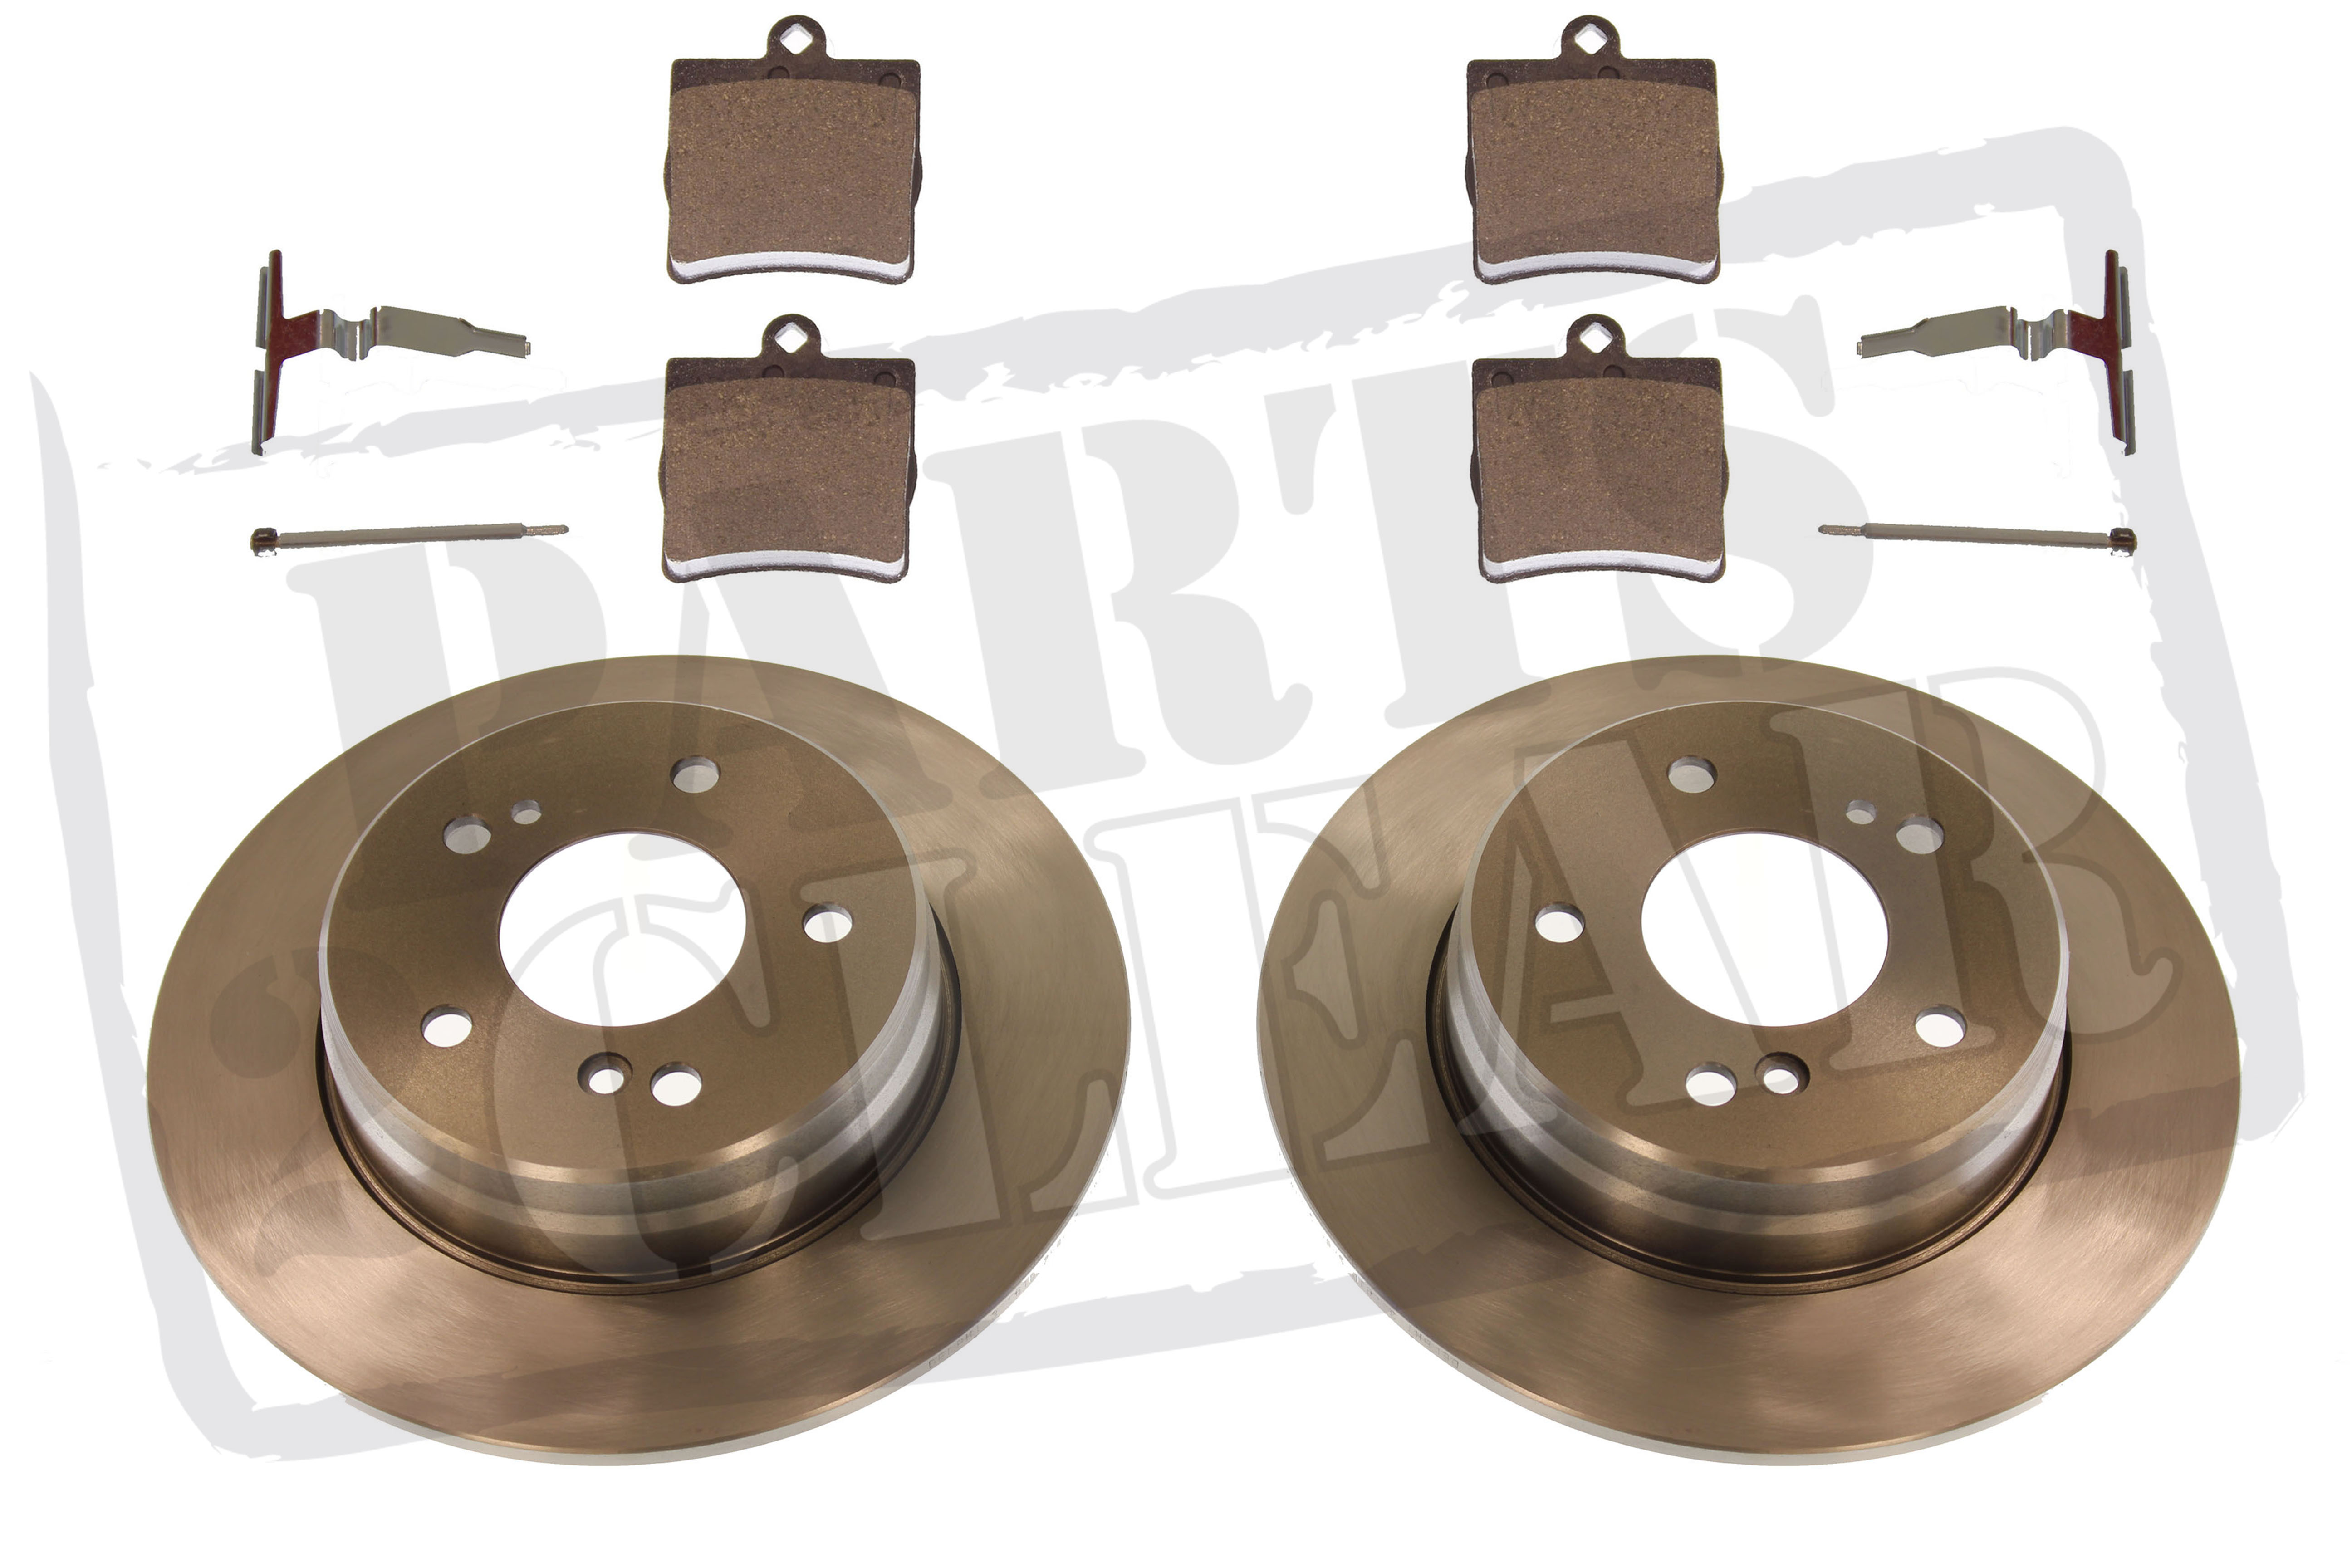 mercedes c220 2 2 cdi rear brake discs pads inc fitting kit w203 c203 s203 ebay. Black Bedroom Furniture Sets. Home Design Ideas